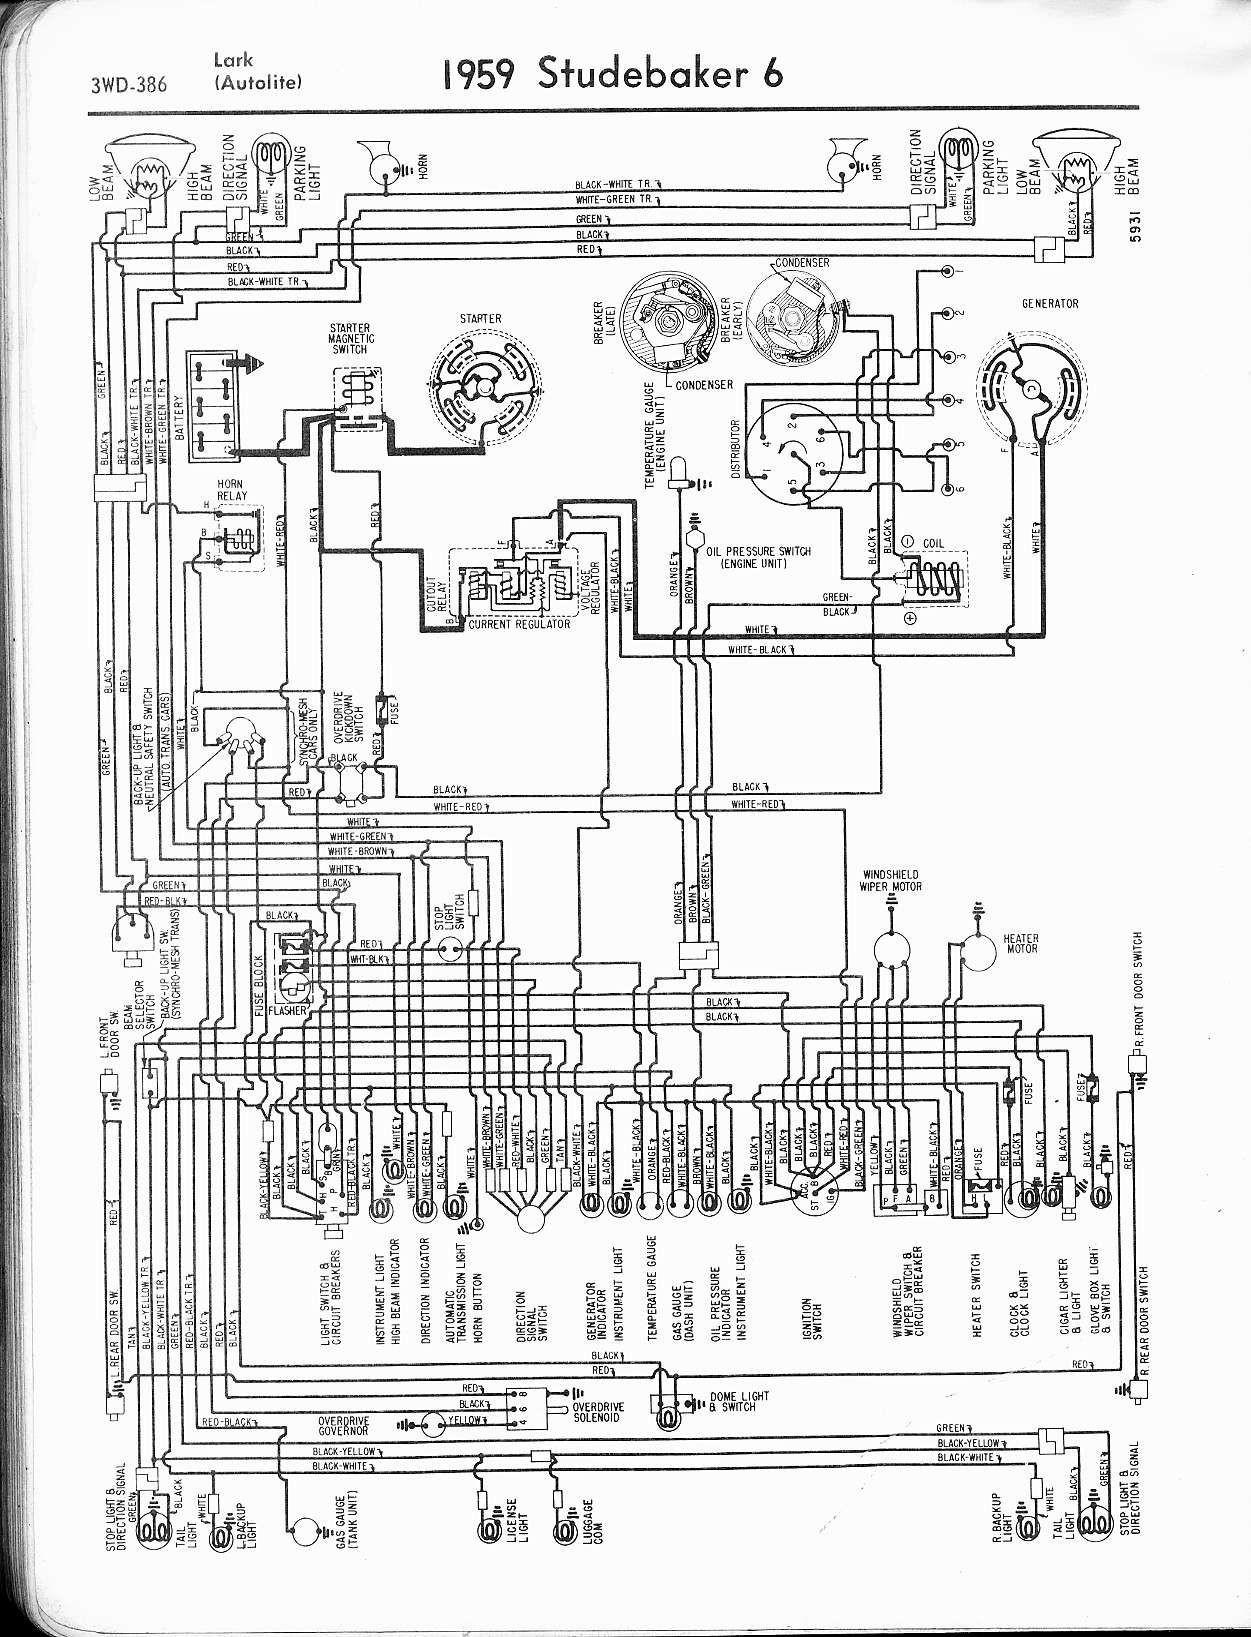 17 Simple Car Wiring Diagrams Design With Images Andrea